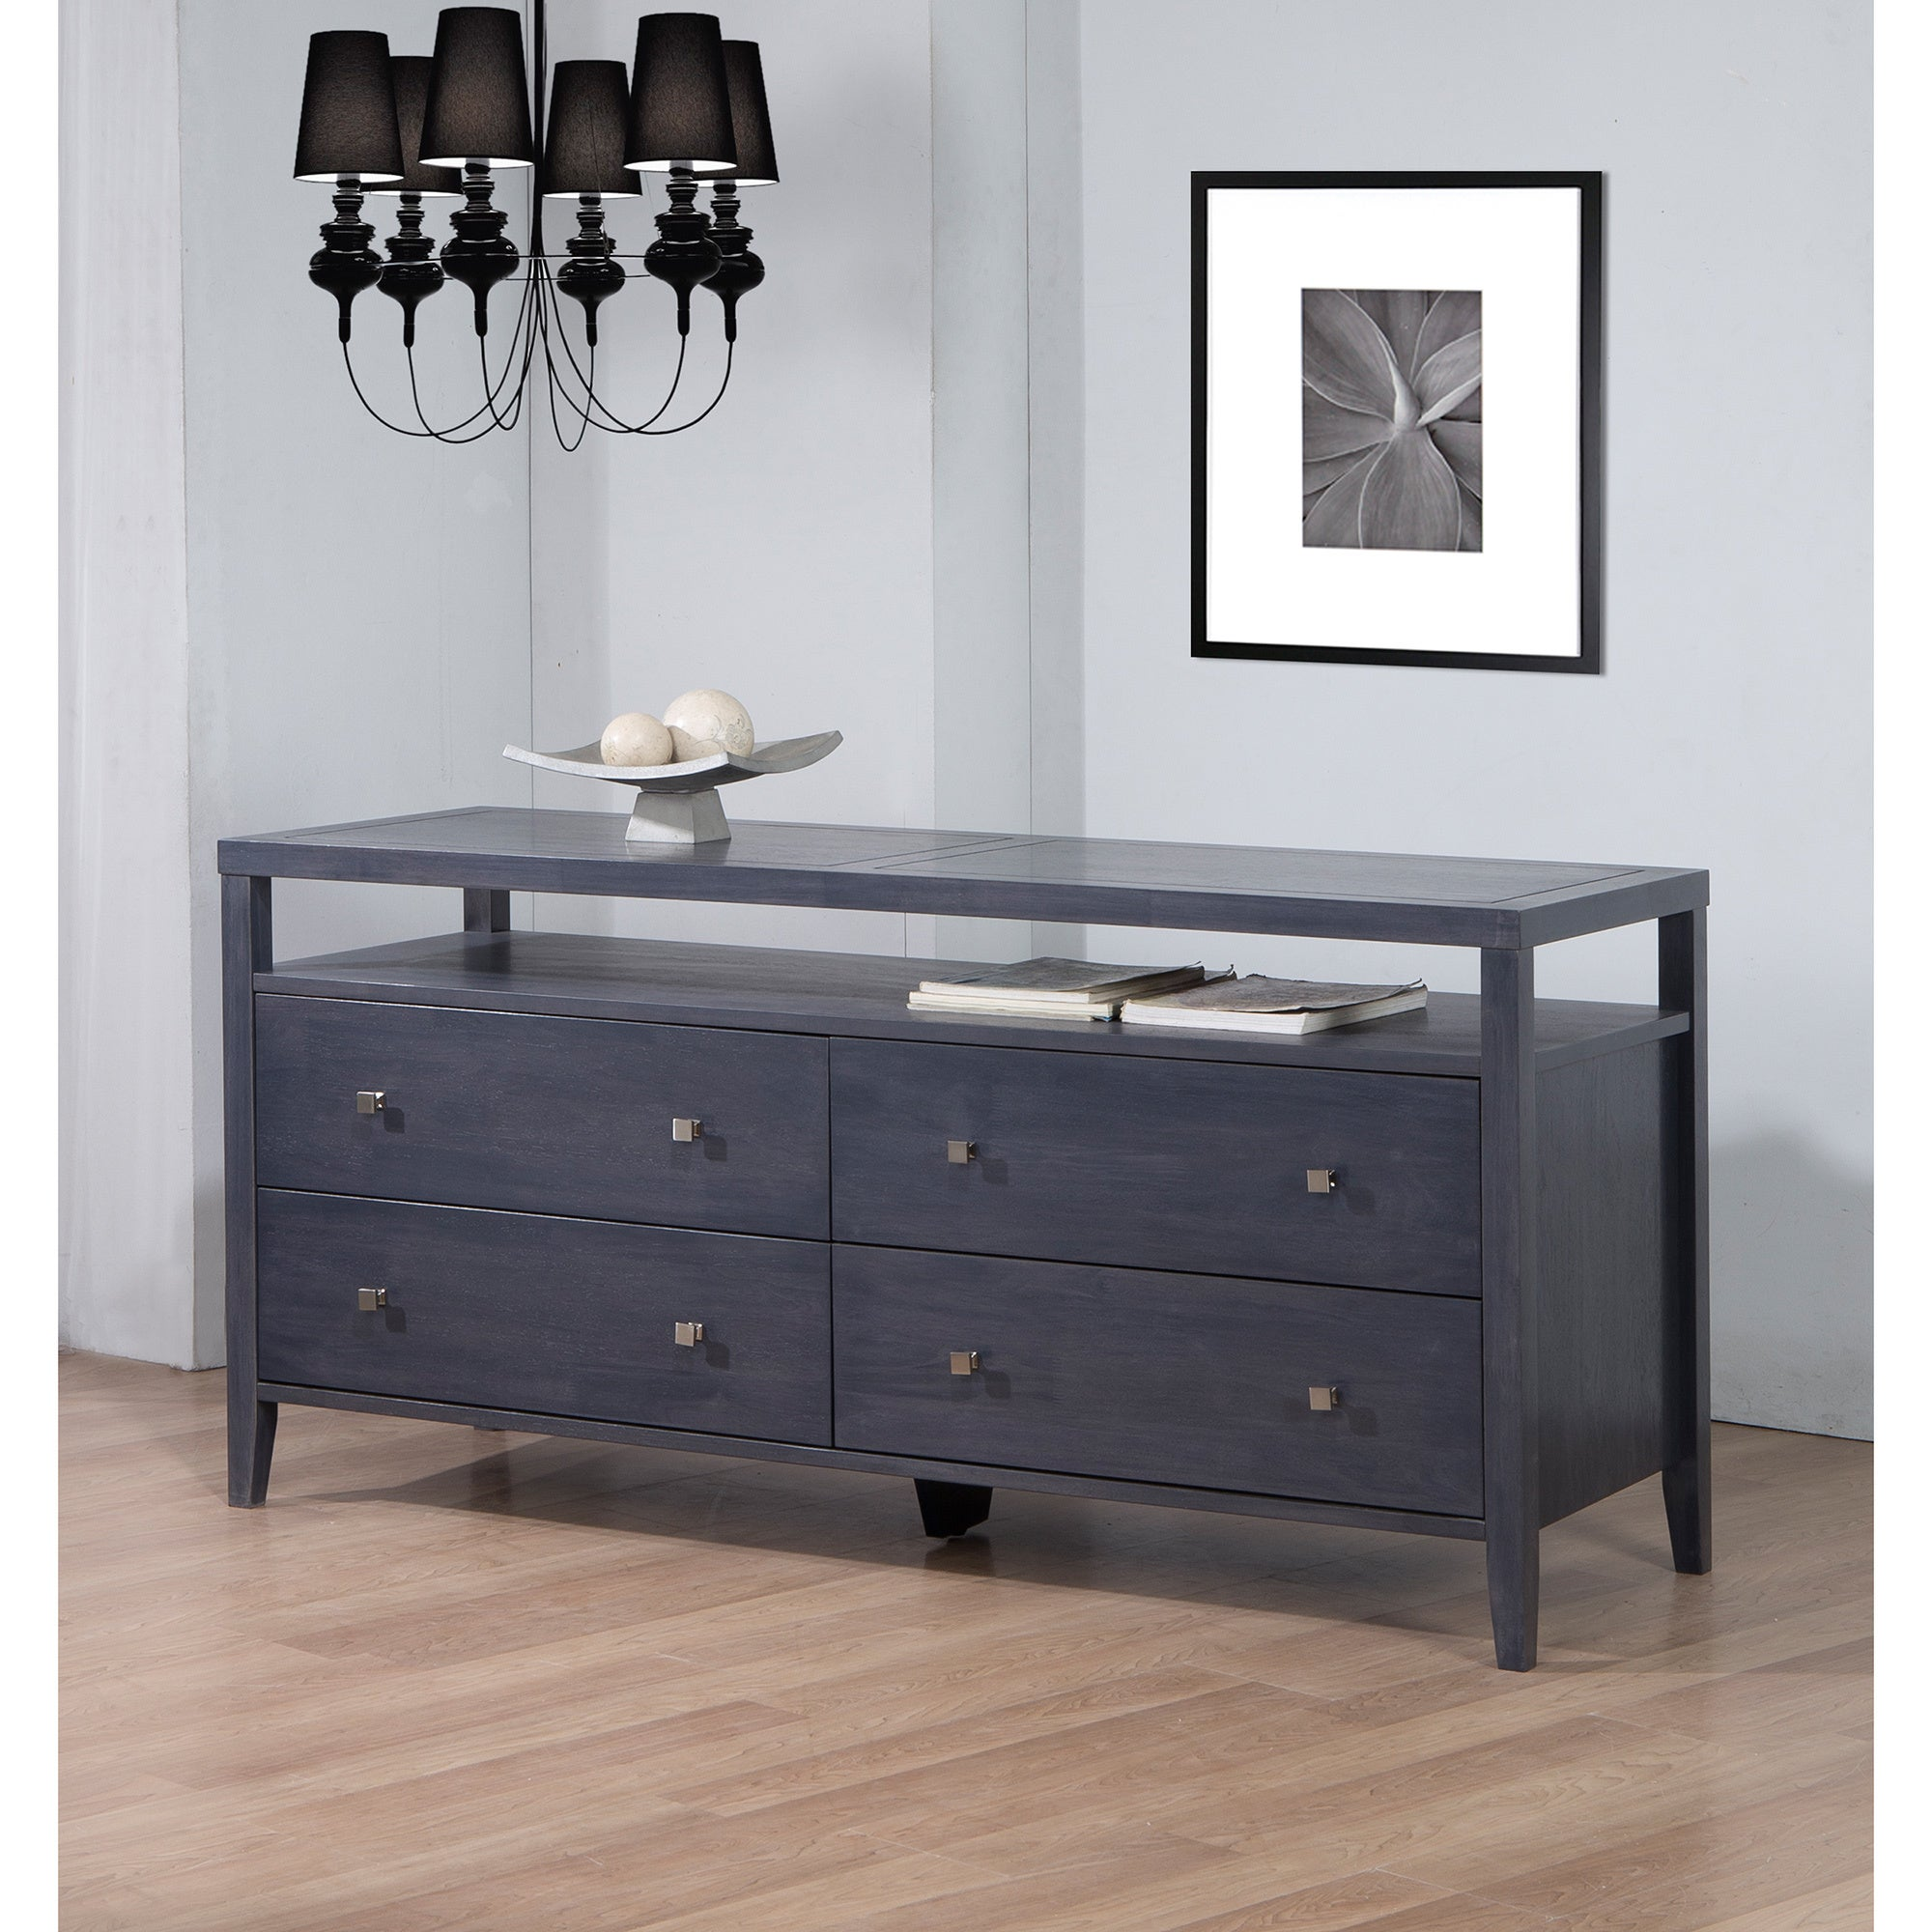 Shop Strick Bolton Aristo Dark Grey Black 4 Drawer Dresser Free